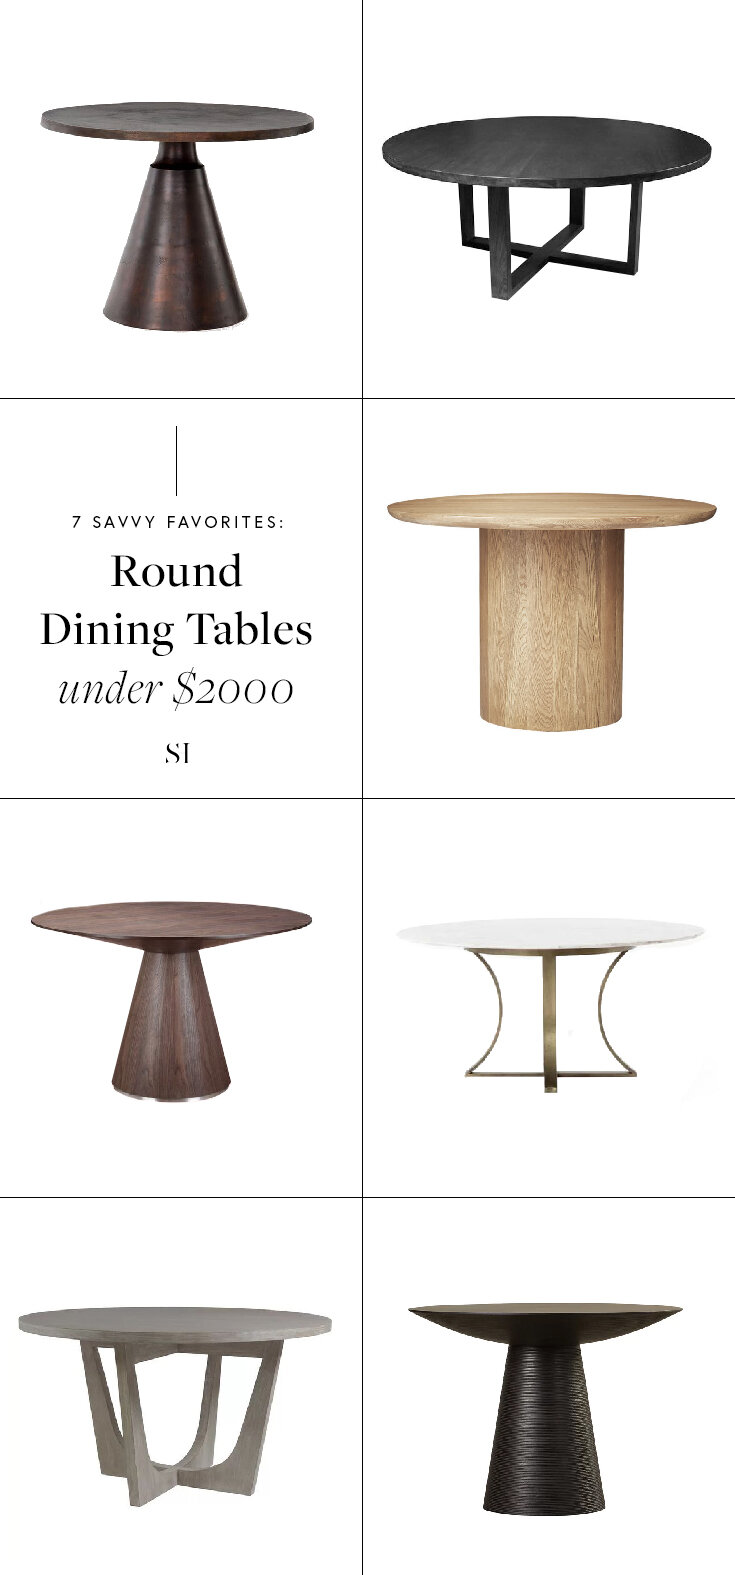 best-modern-round-dining-tables-under-$2000-by-the-savvy-heart-interior-design-studio-and-blog.jpg